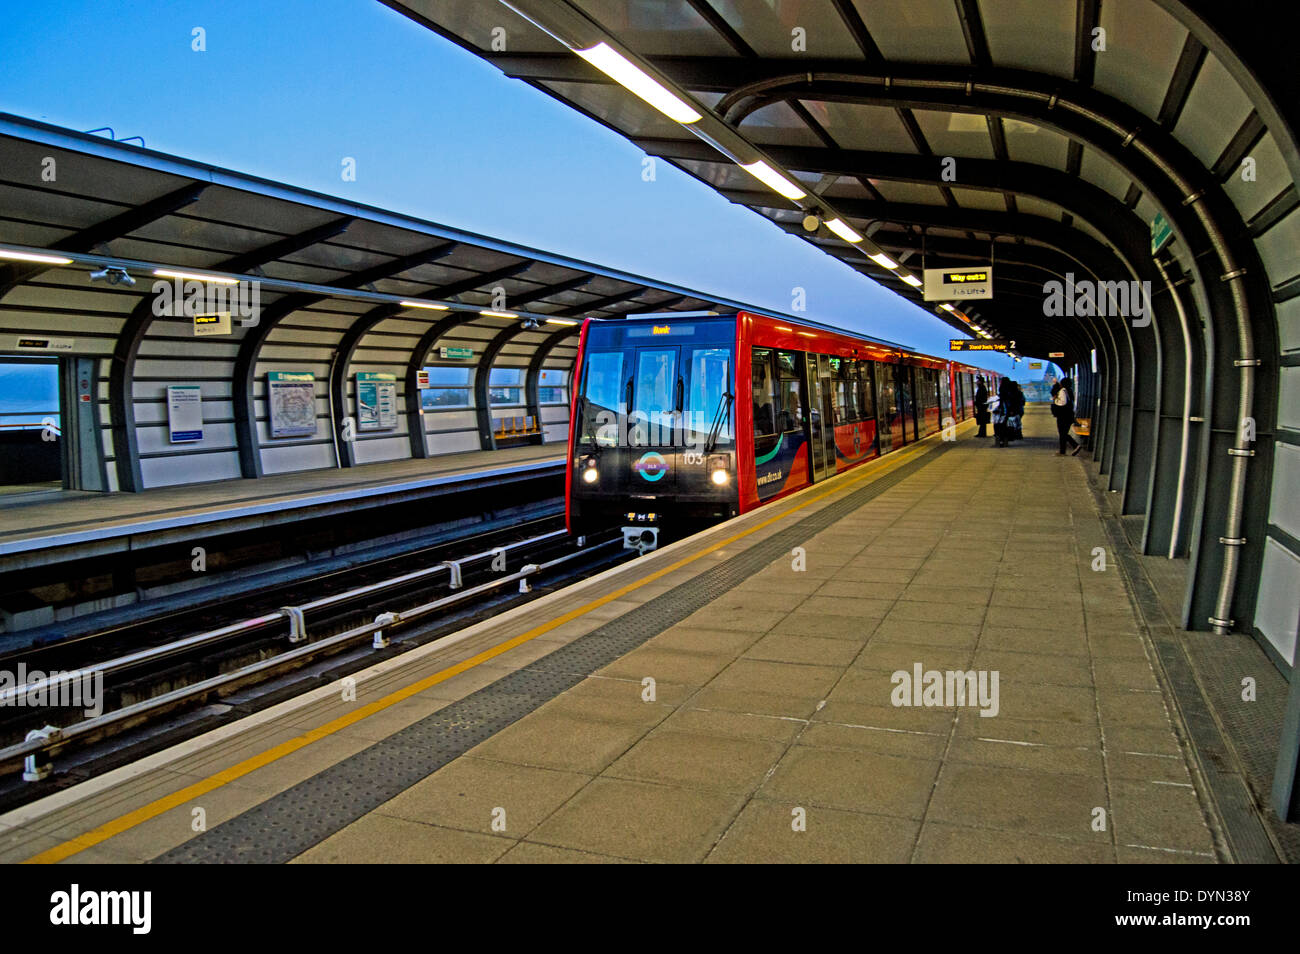 Pontoon Dock Docklands Light Railway (DLR) Station, Silvertown Quays, London, England, United Kingdom - Stock Image